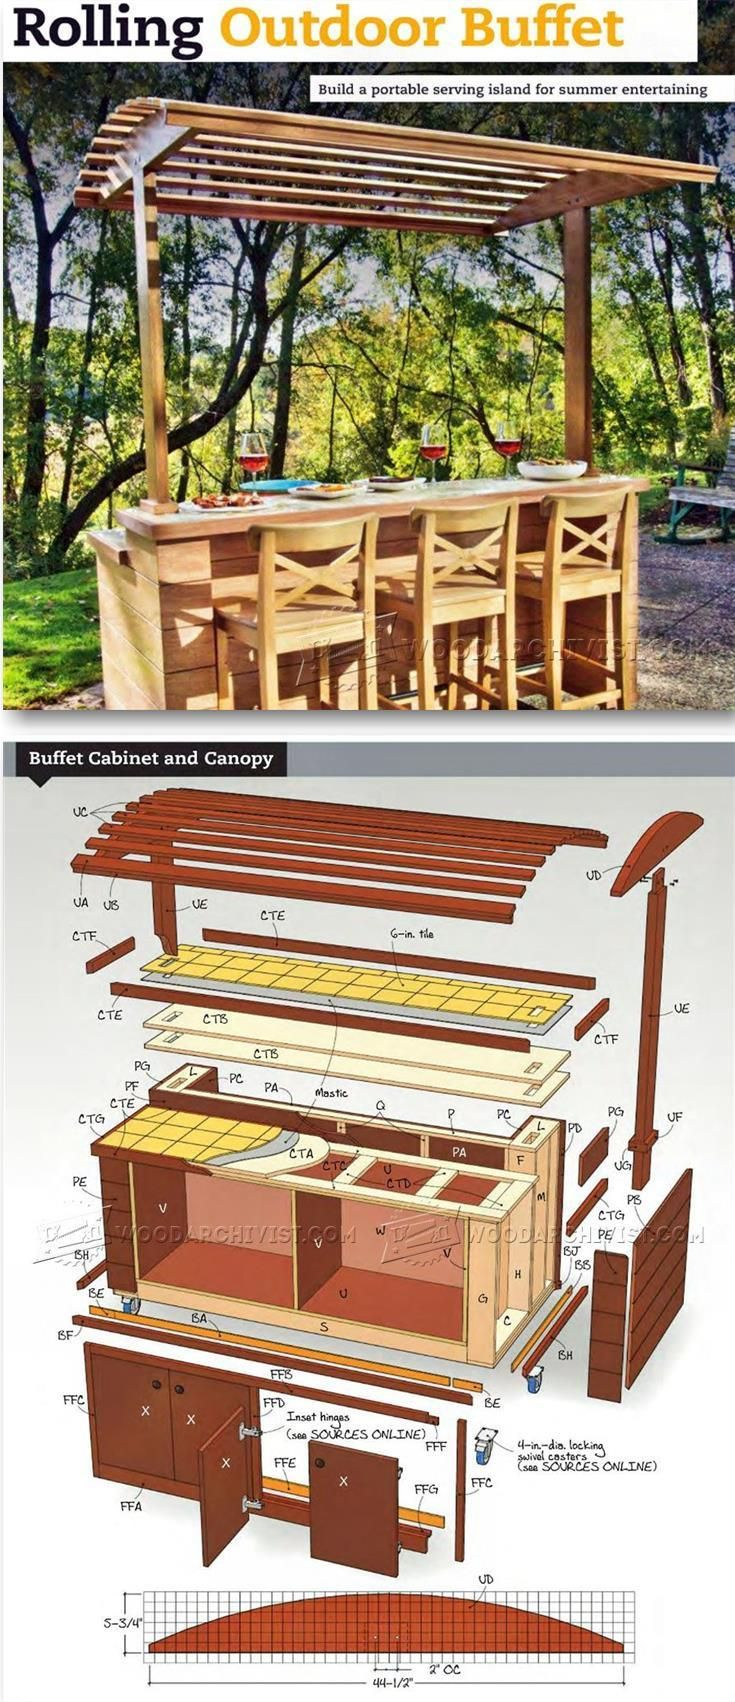 Outdoor furniture plans - Rolling Outdoor Buffet Table Plans Outdoor Furniture Plans Projects Woodarchivist Com